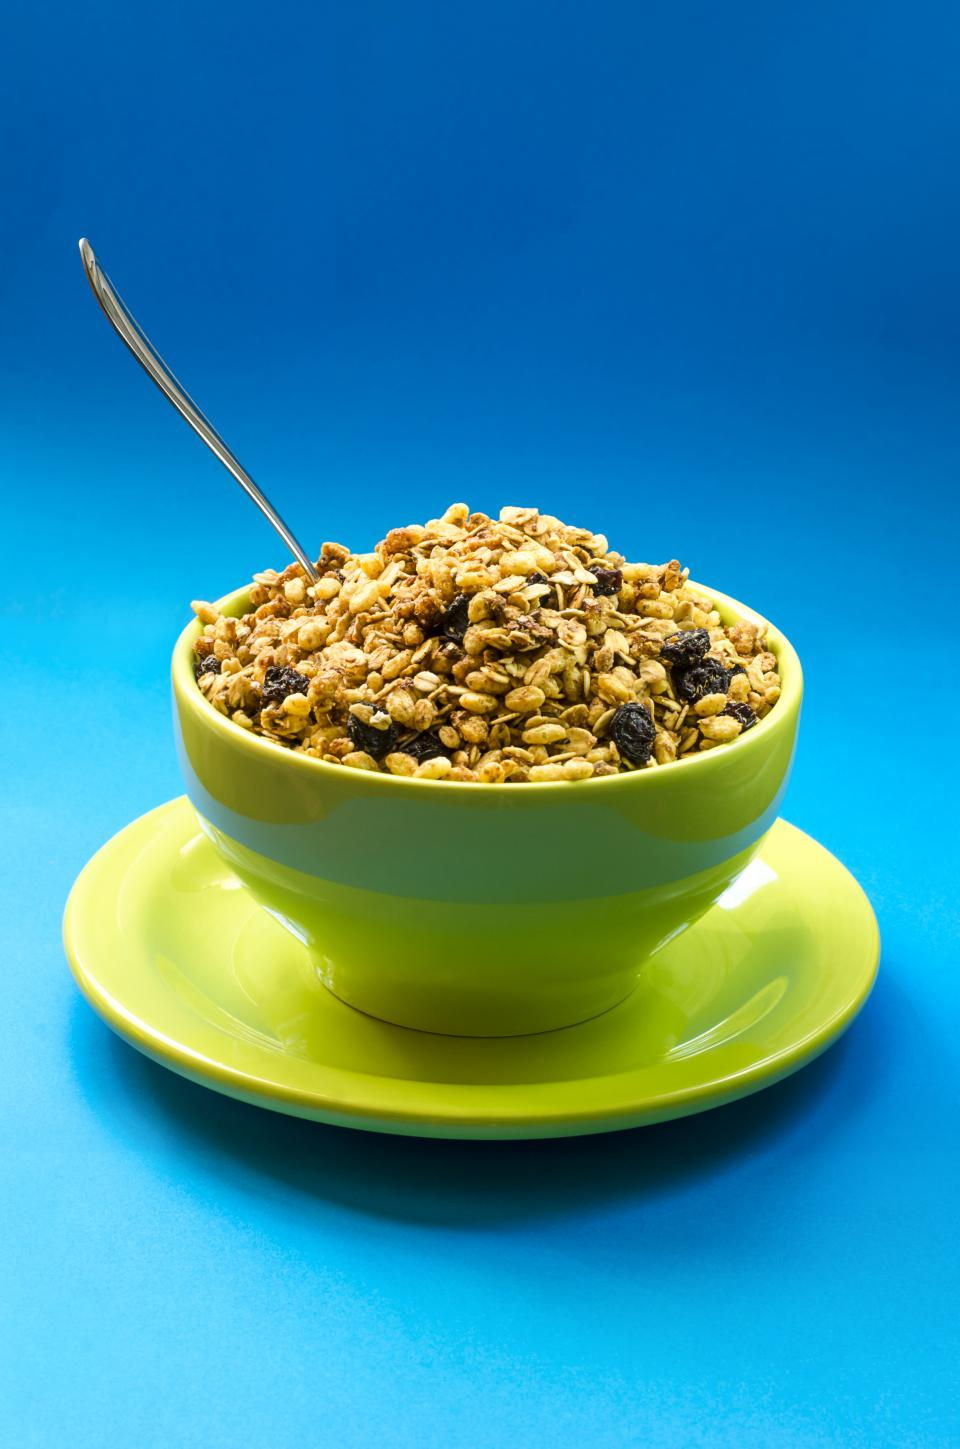 food bowl plate green spoon raisins peanut